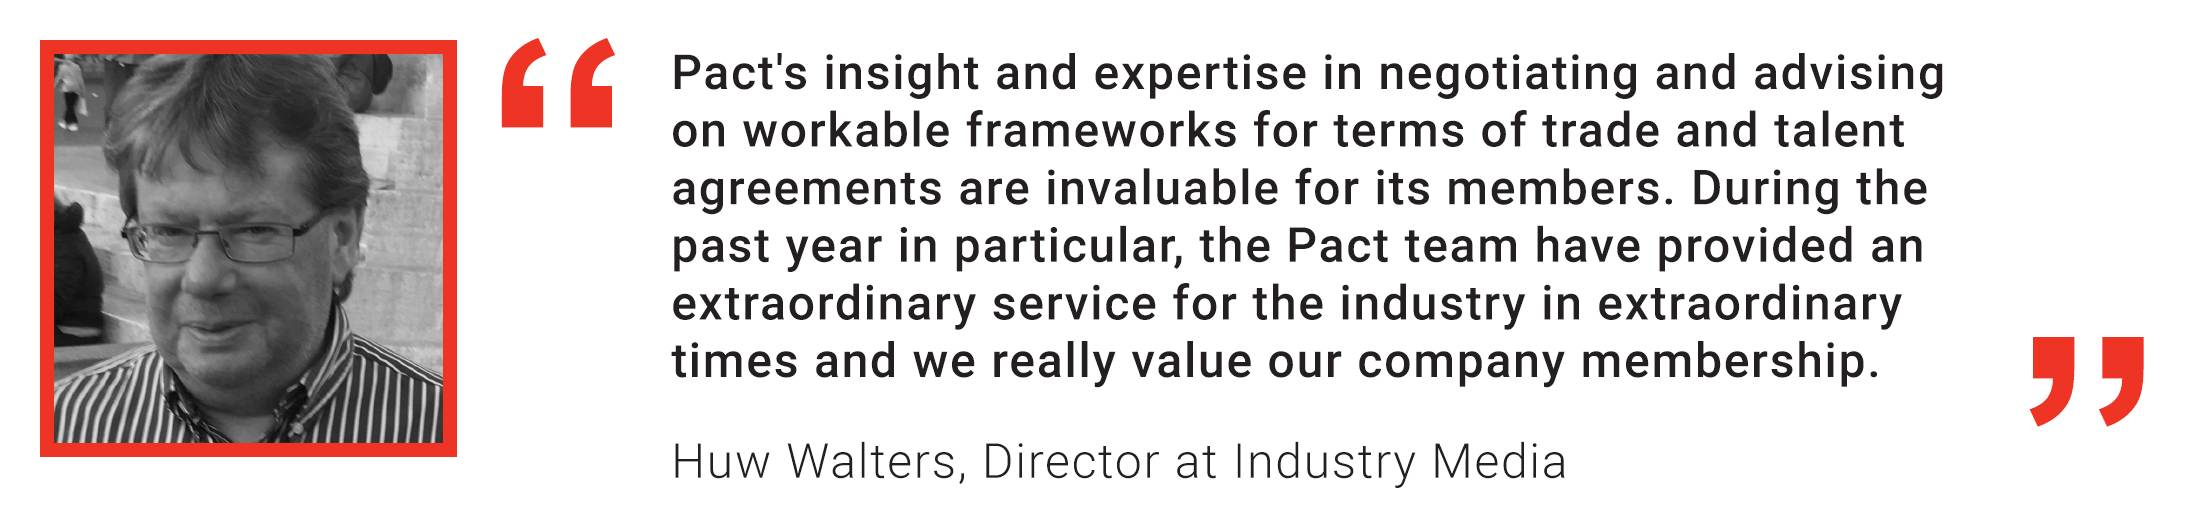 Member quote: Huw Walters: Pact's insight and expertise in negotiating and advising on workable frameworks for terms of trade and talent agreements are invaluable for its members. During the past year